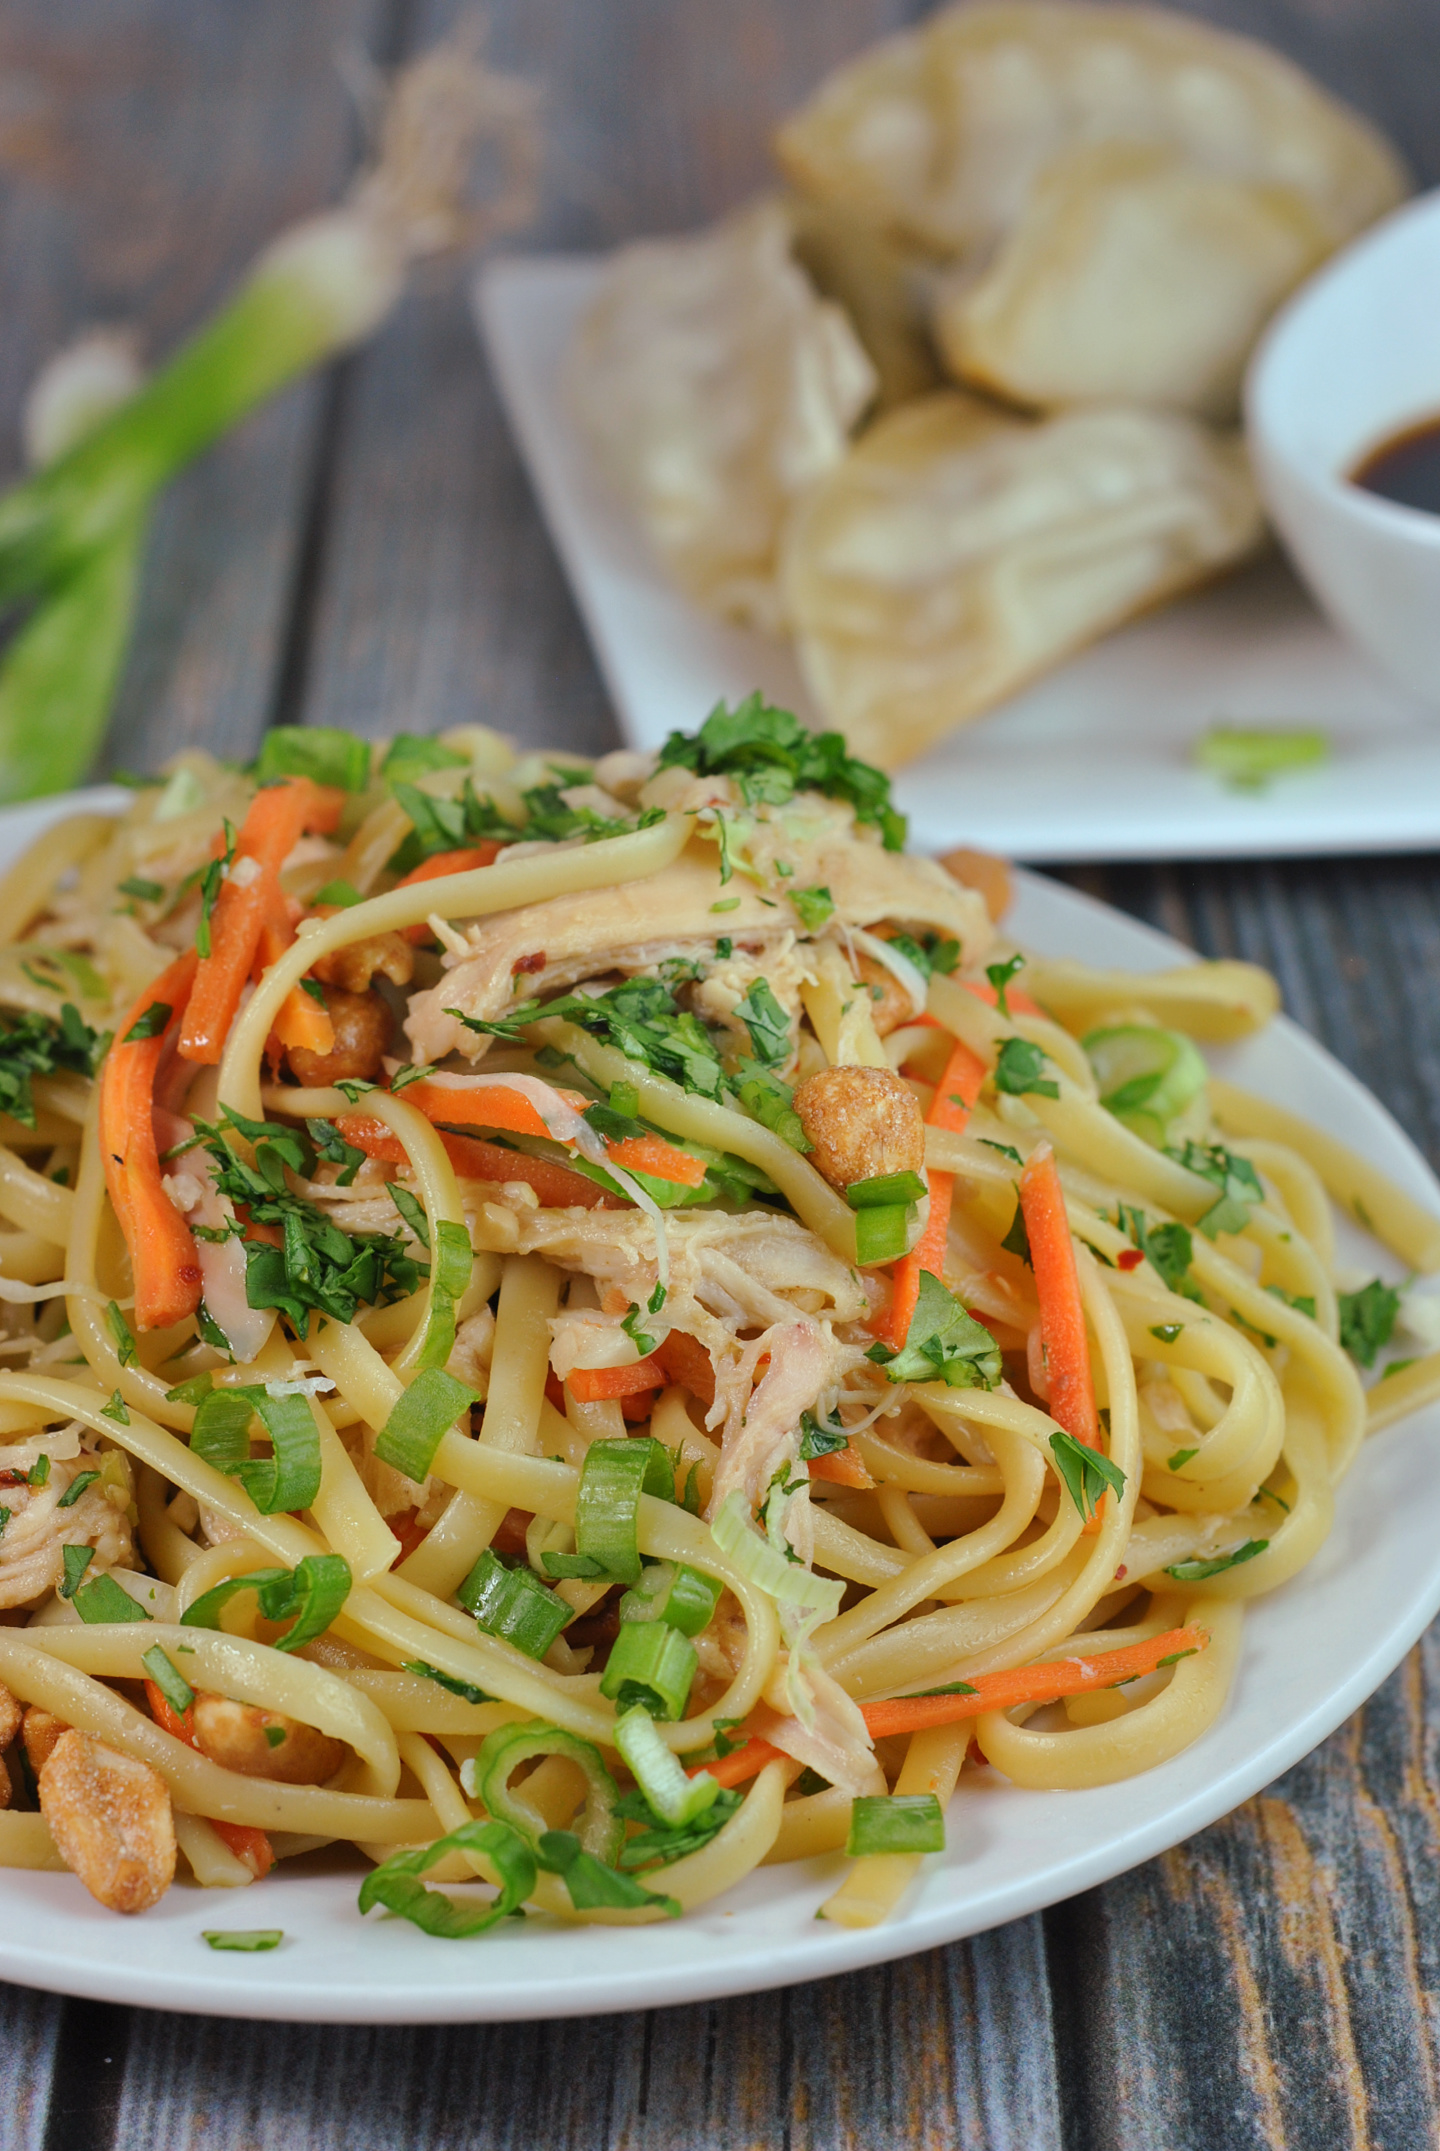 Easy Thai Noodles with Chicken via @preventionrd